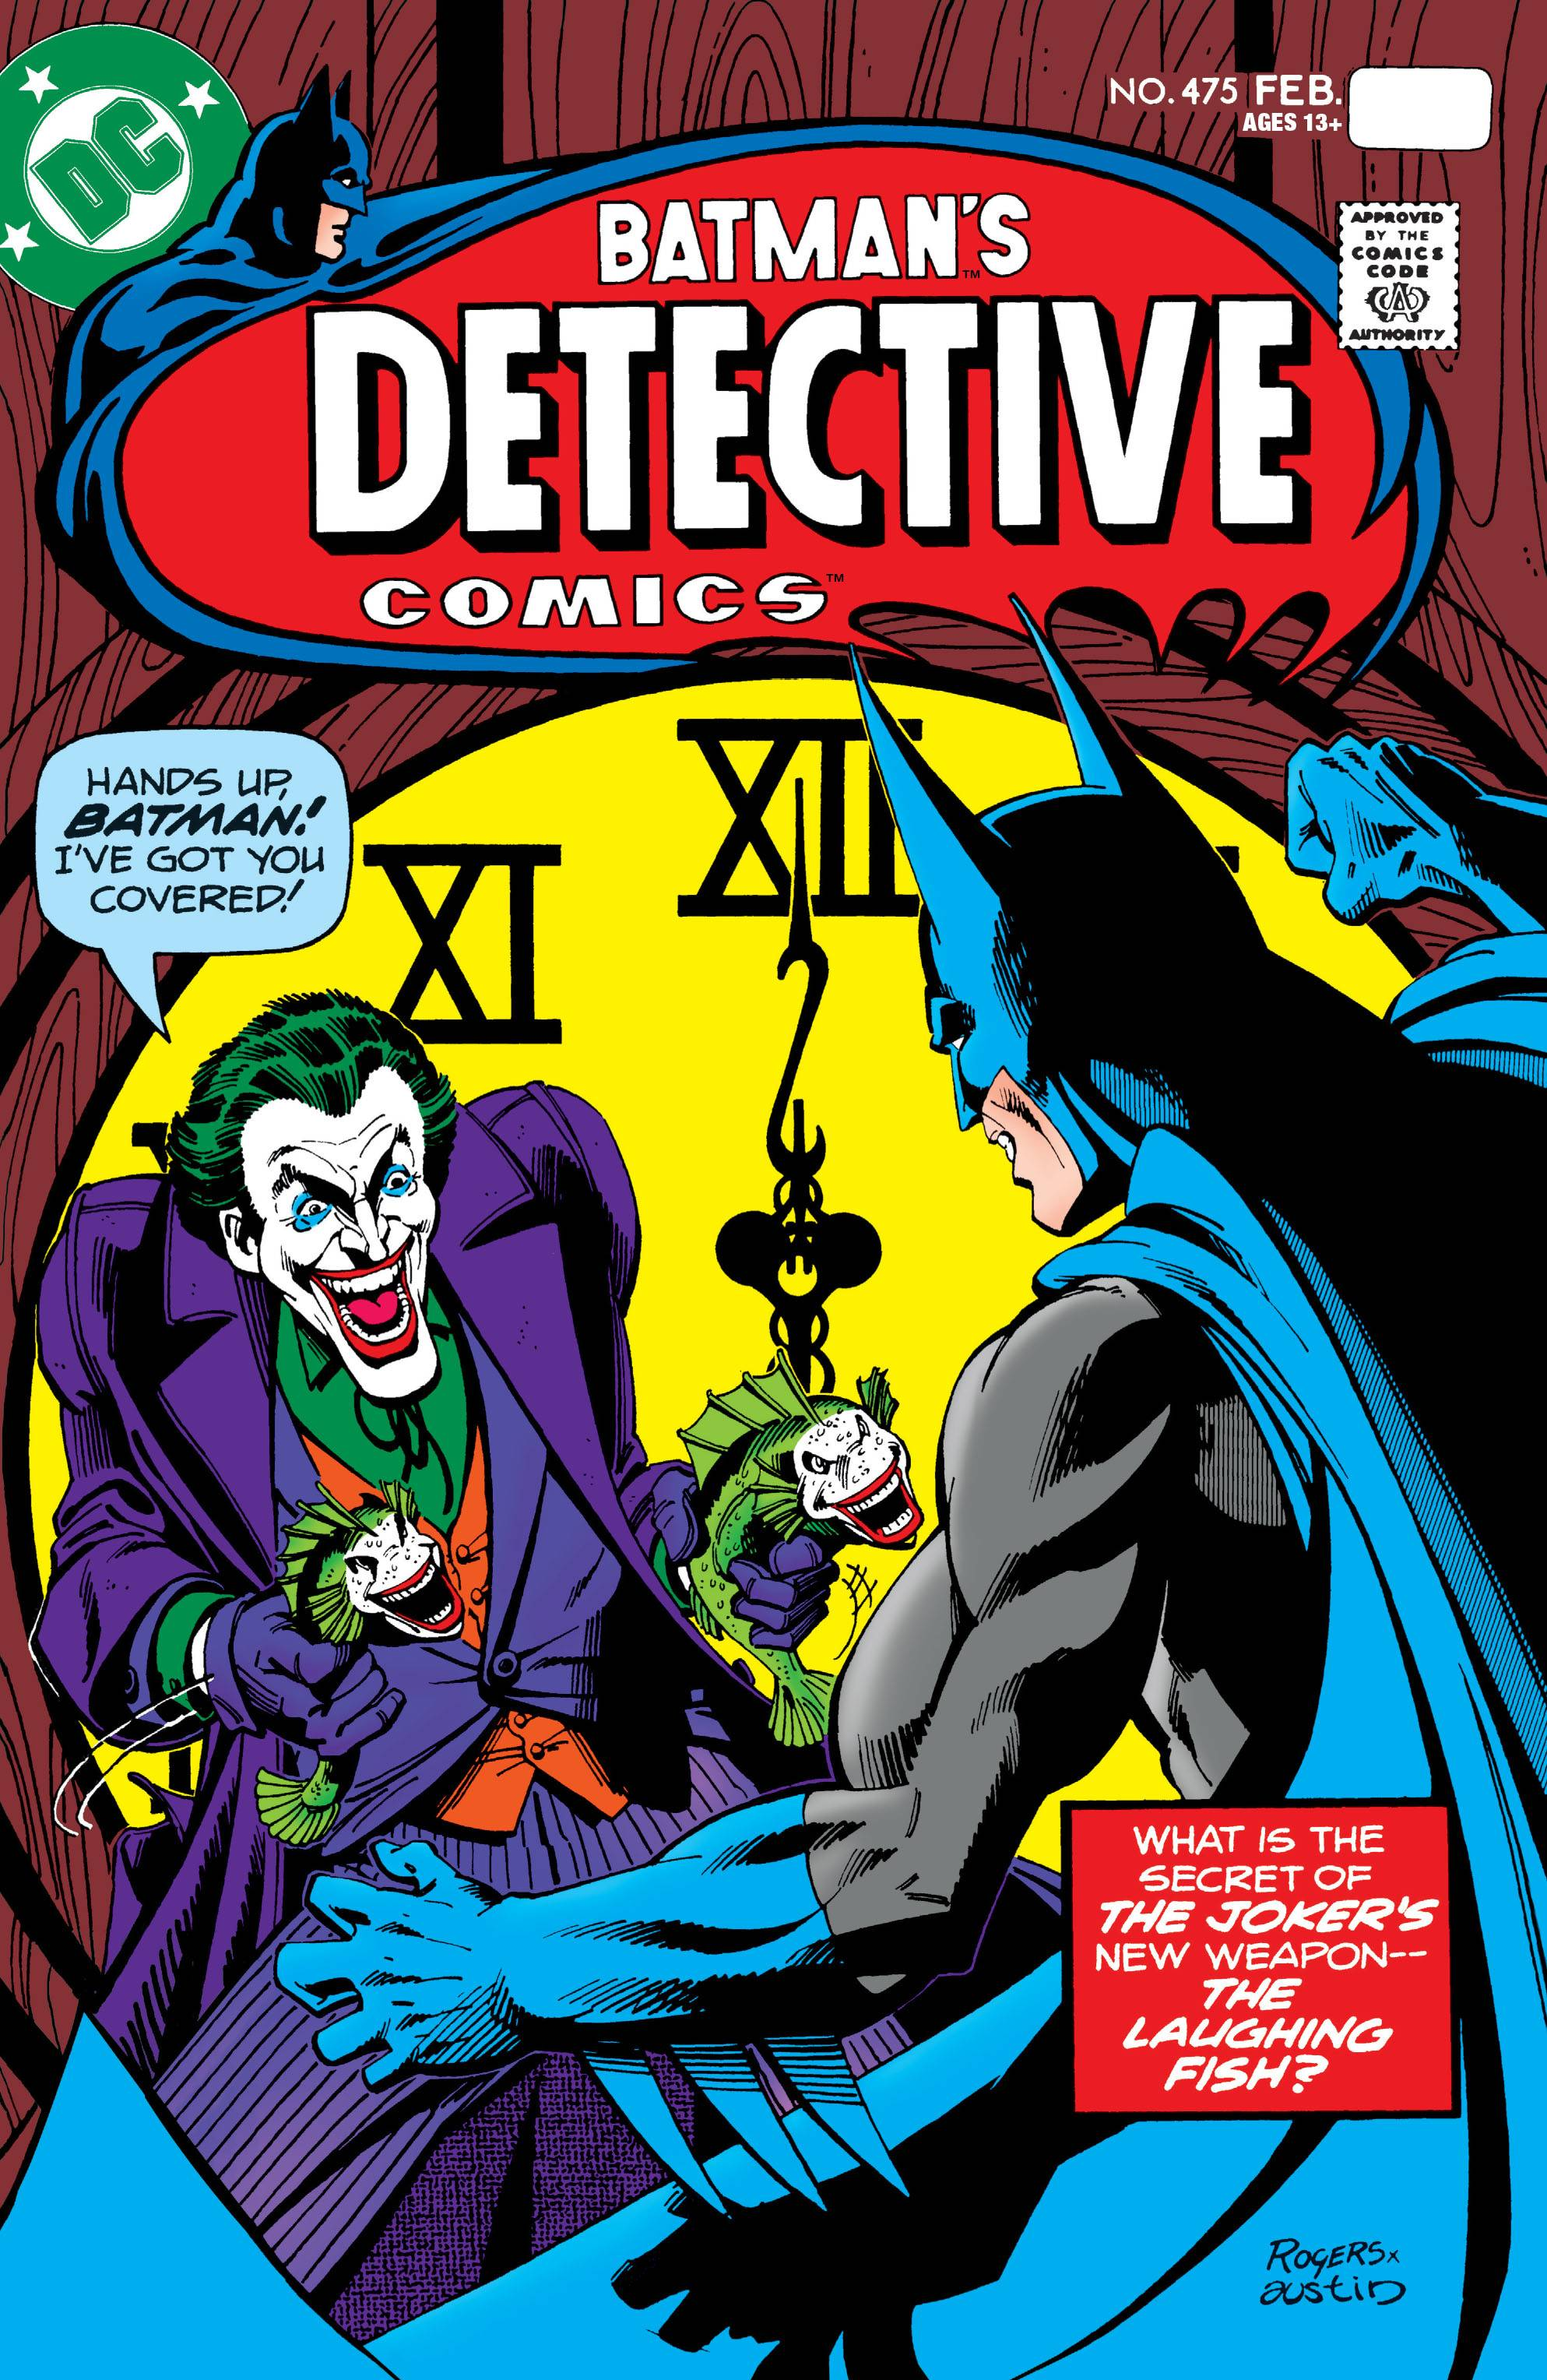 Batman Detective Comics #475 Facsimile Edition